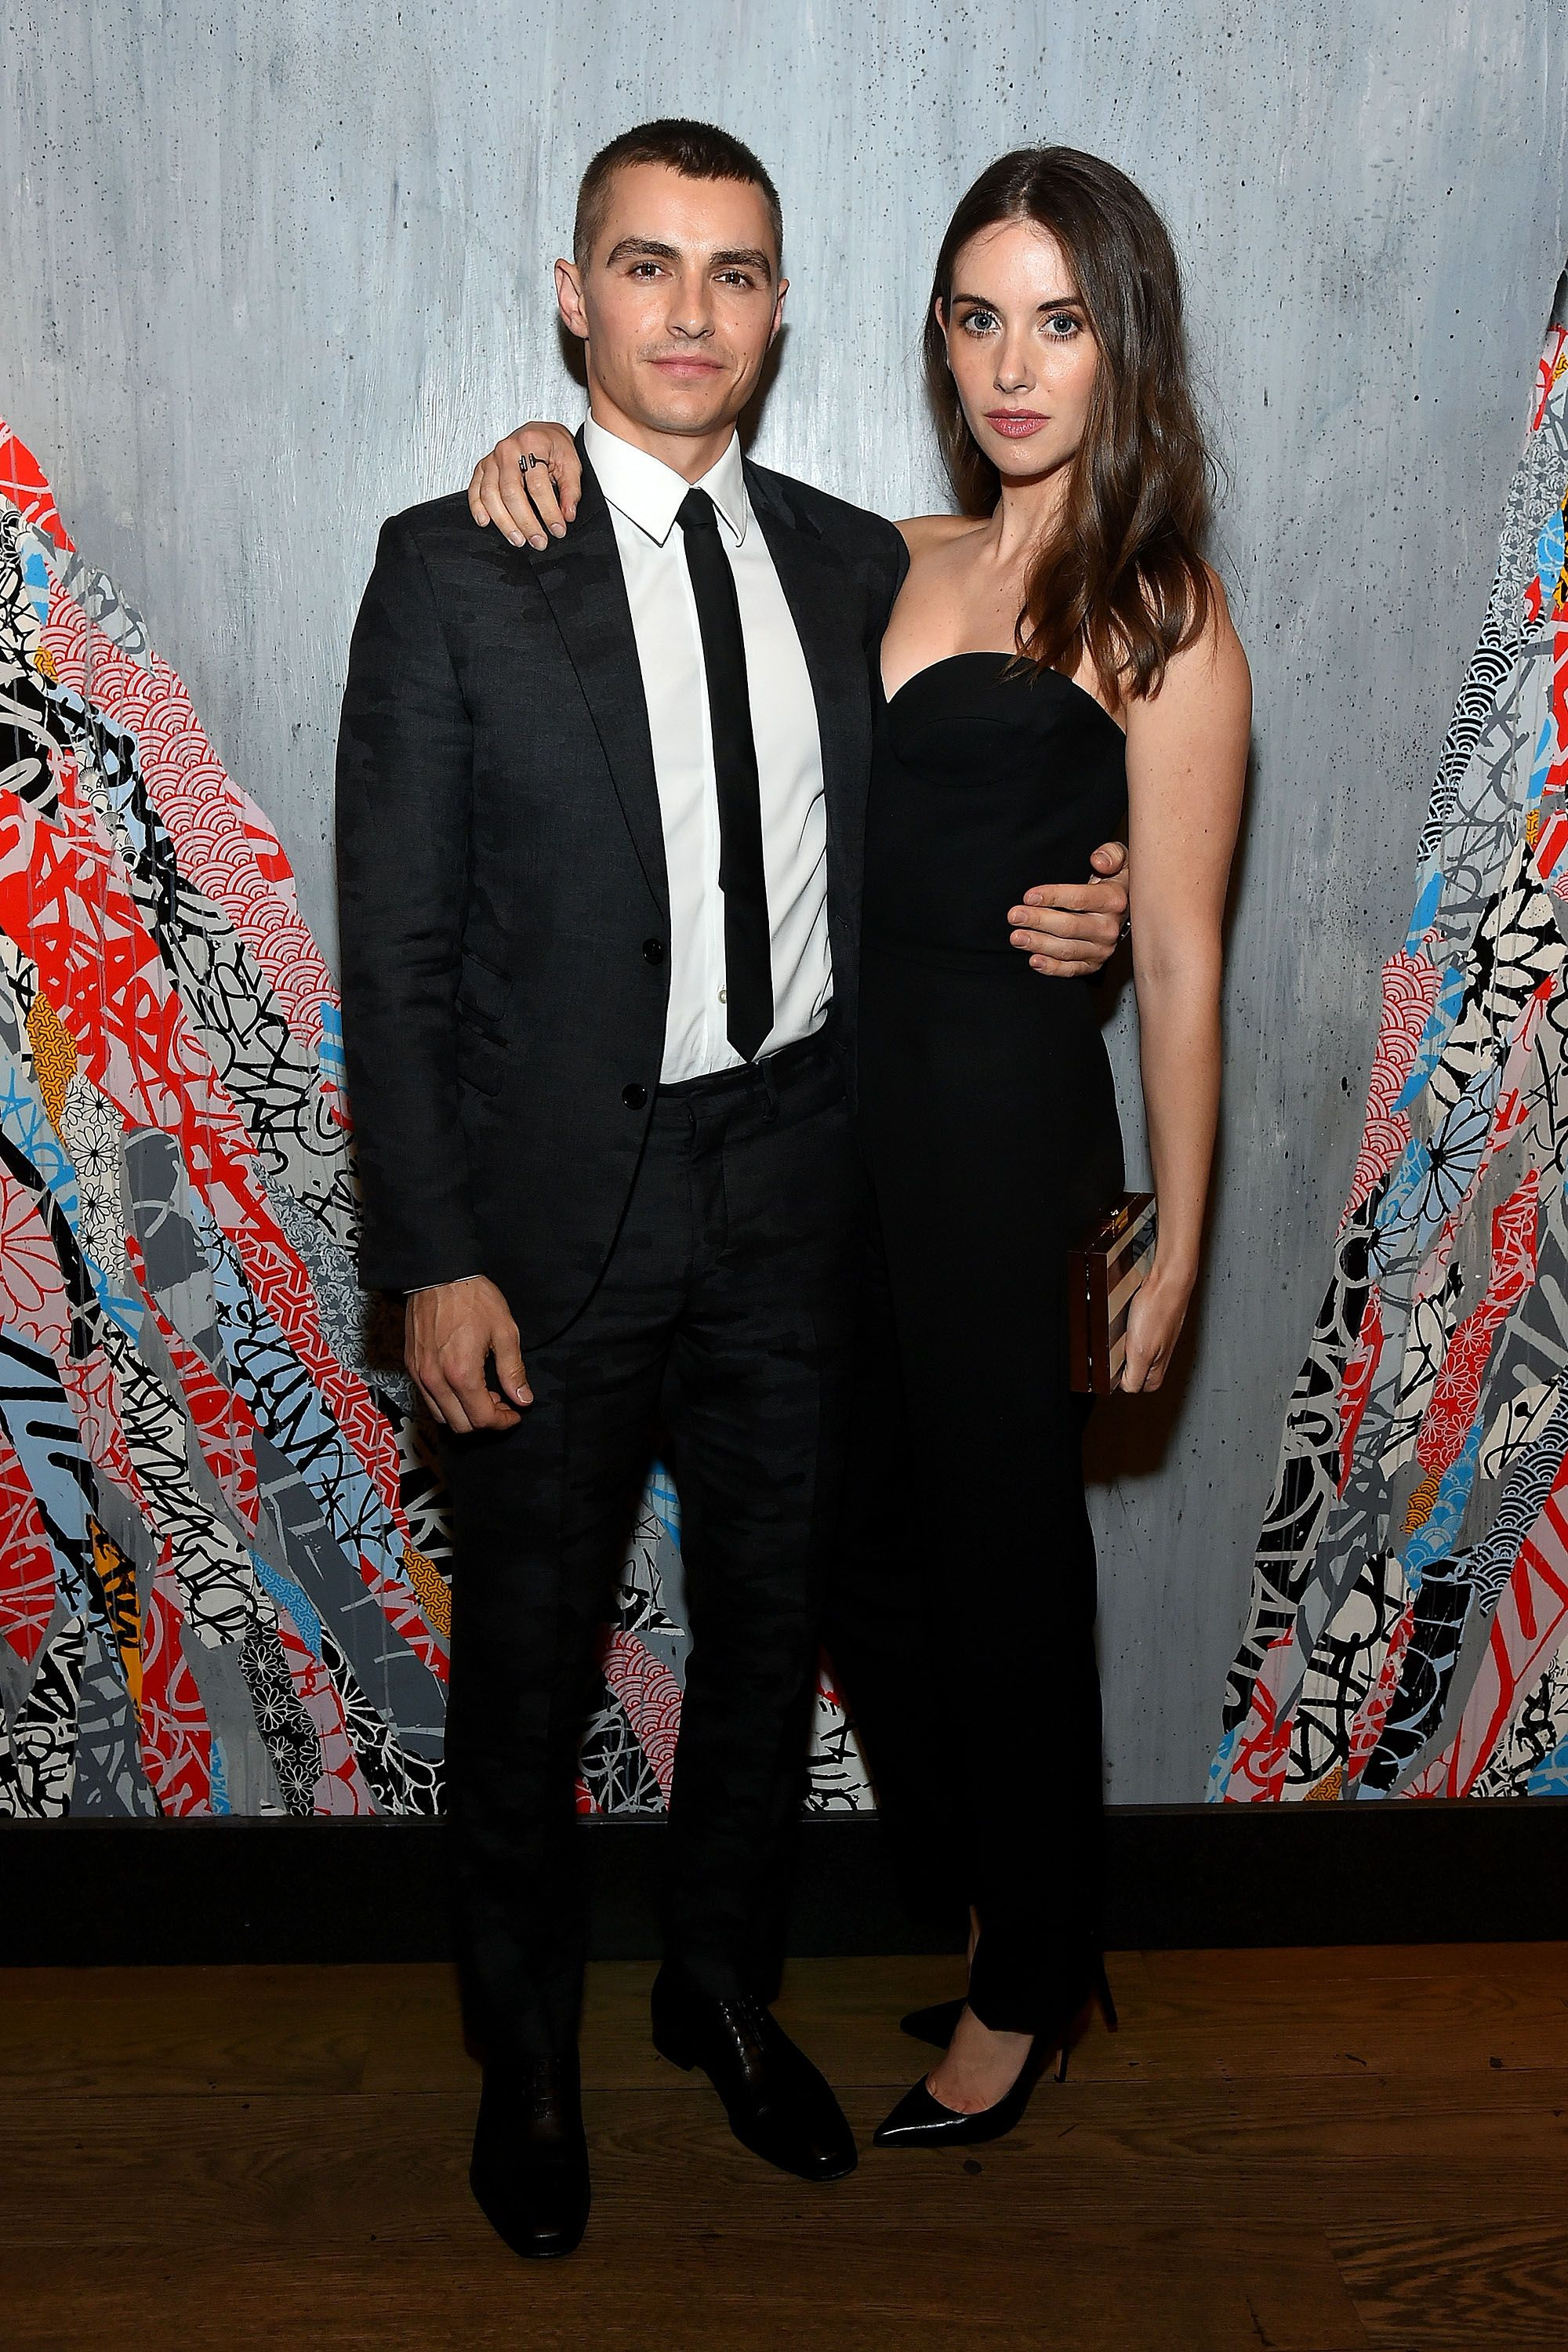 How long has dave franco and alison brie been dating a year